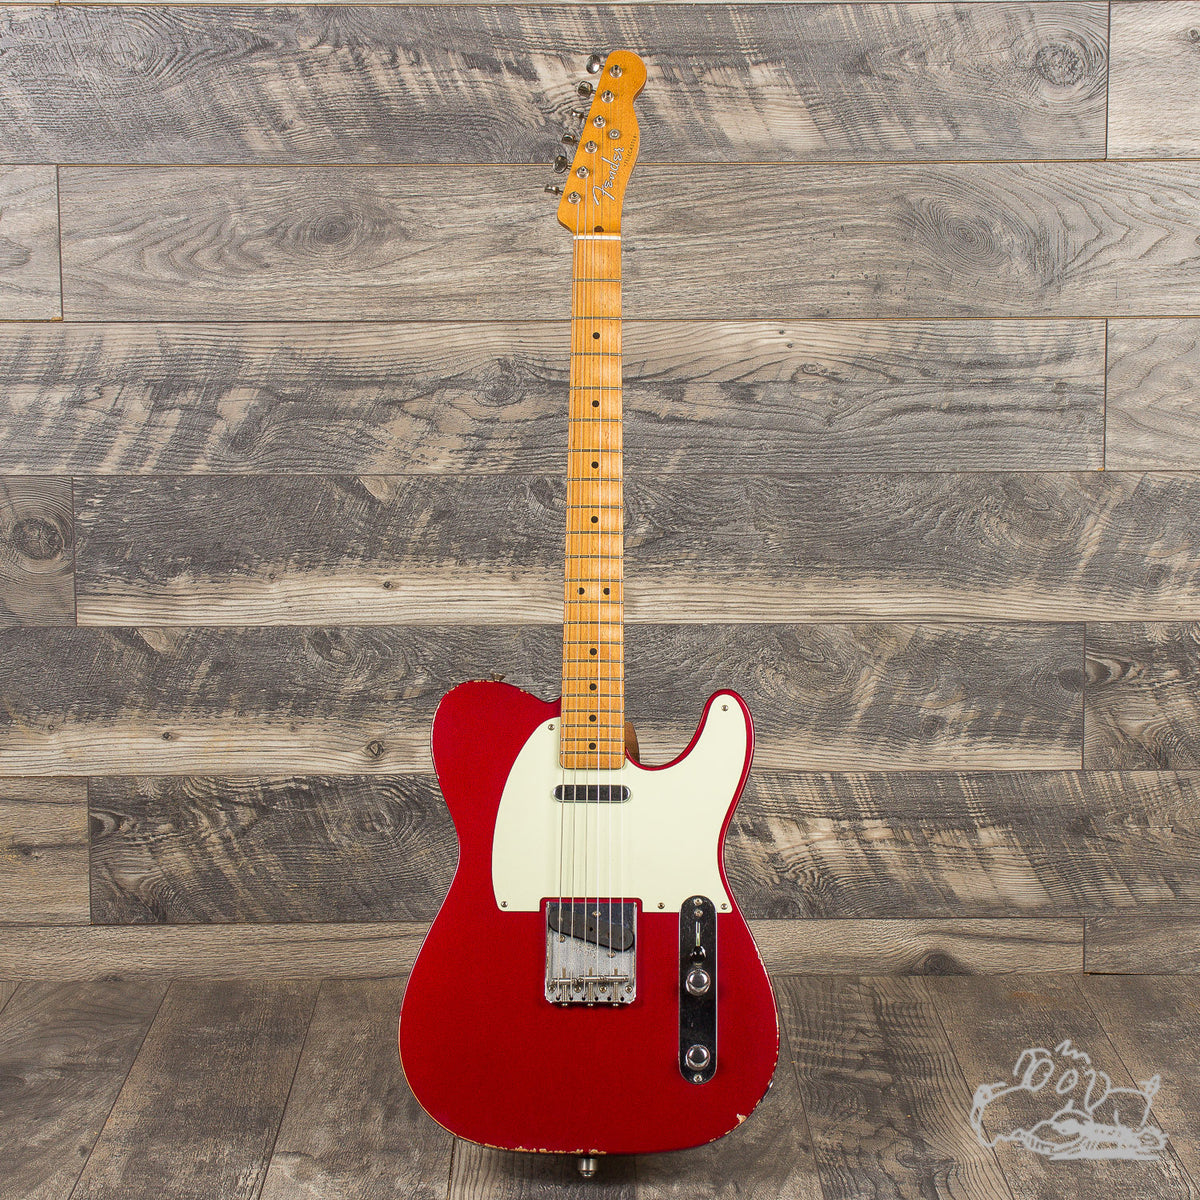 2018 Fender Road Worn Telecaster Special Edition - Candy Apple Red